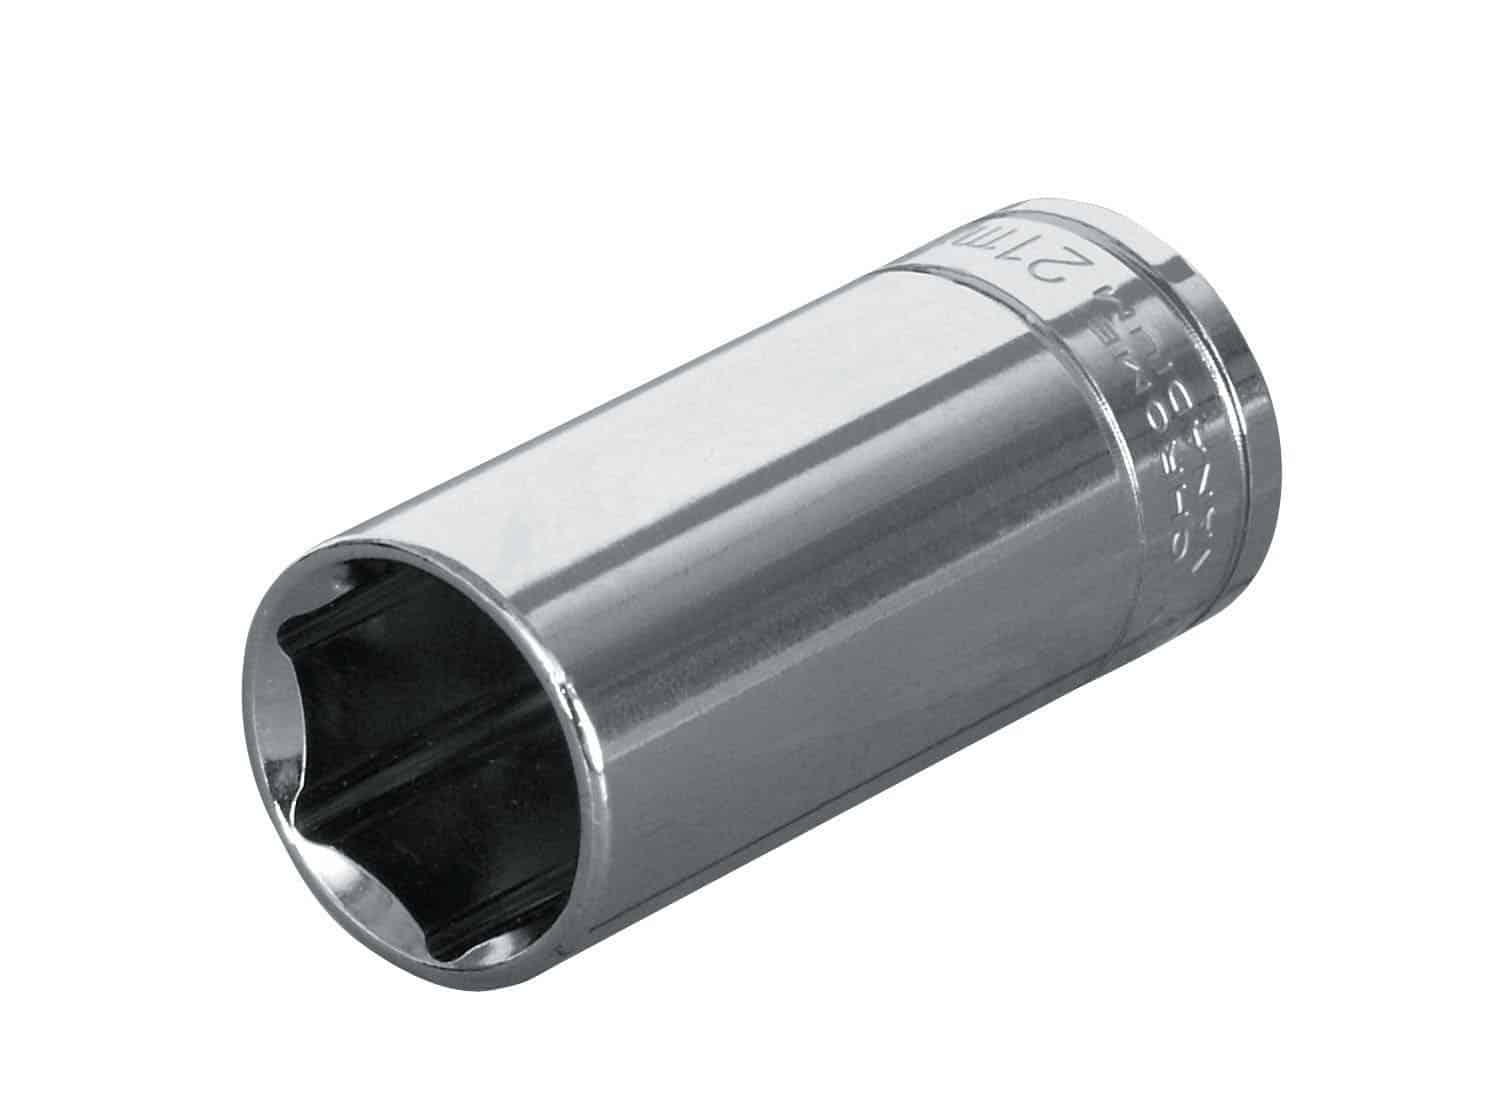 "EXPERT E030217 - 1/4"" Square Drive Metric Long 12Pt Socket 7mm"